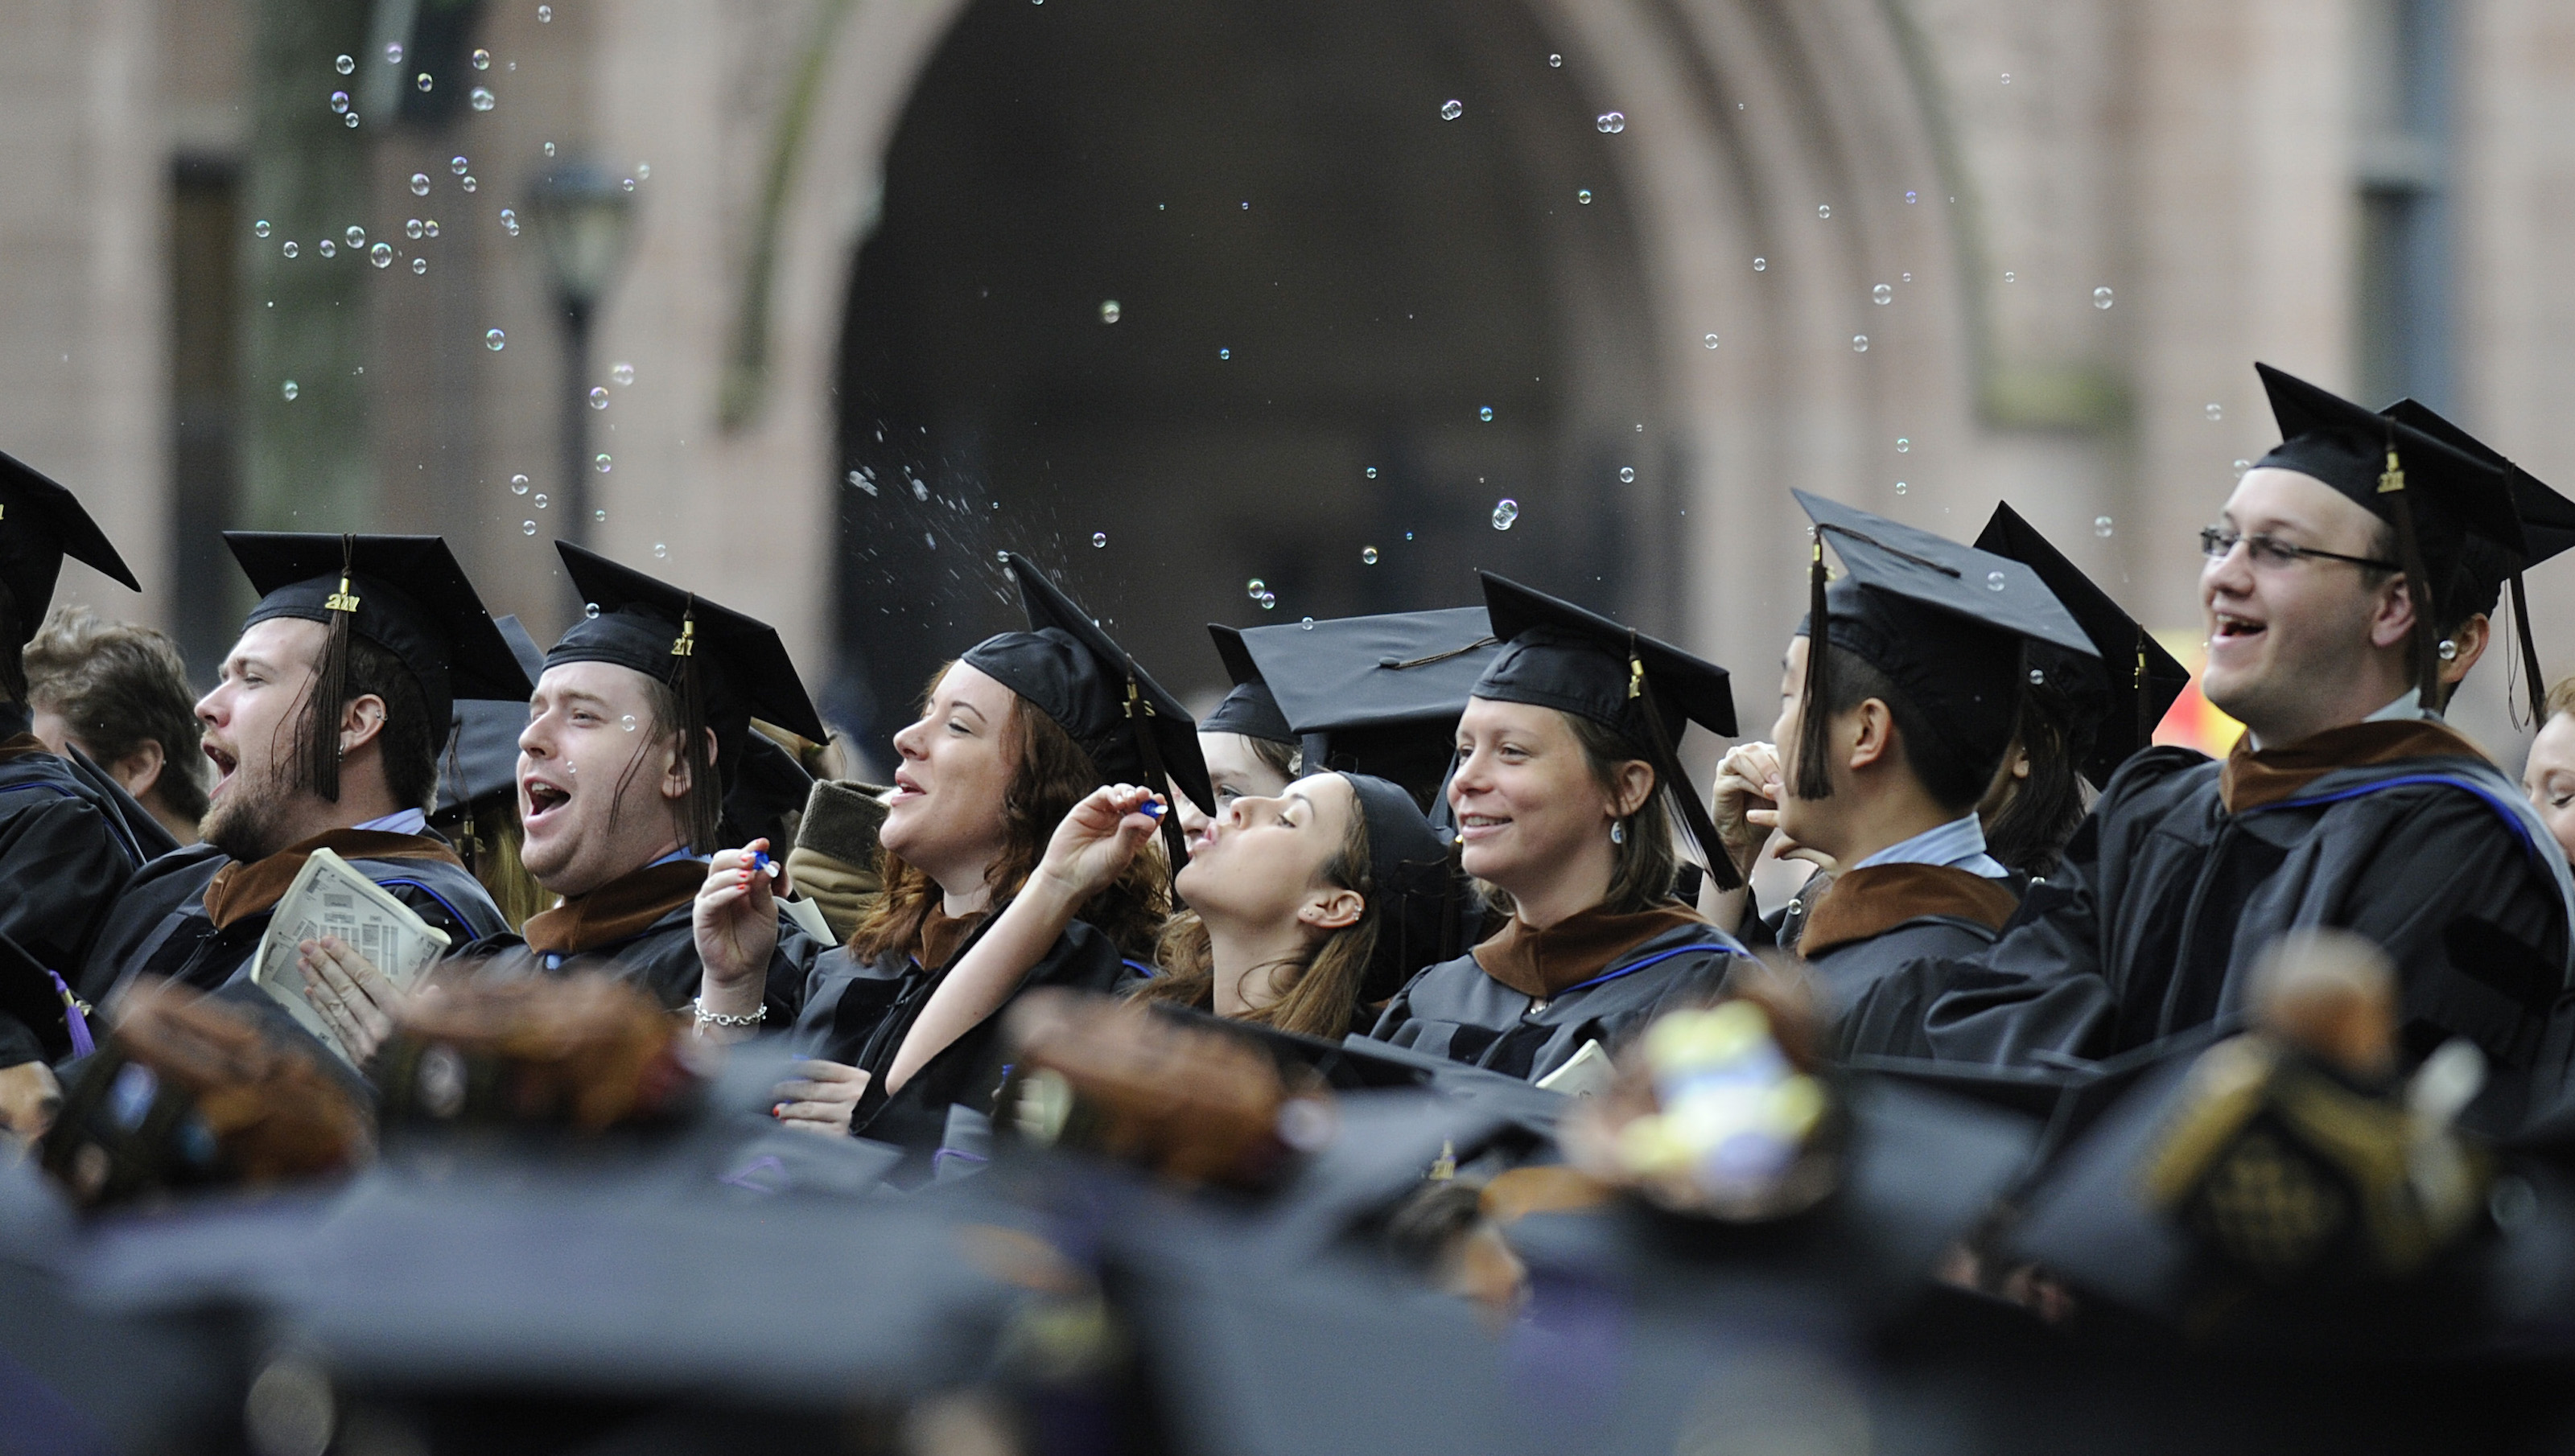 Graduates celebrate during commencement exercises at Yale University in New Haven, Conn., Monday, May 23, 2011.  (AP Photo/Jessica Hill)